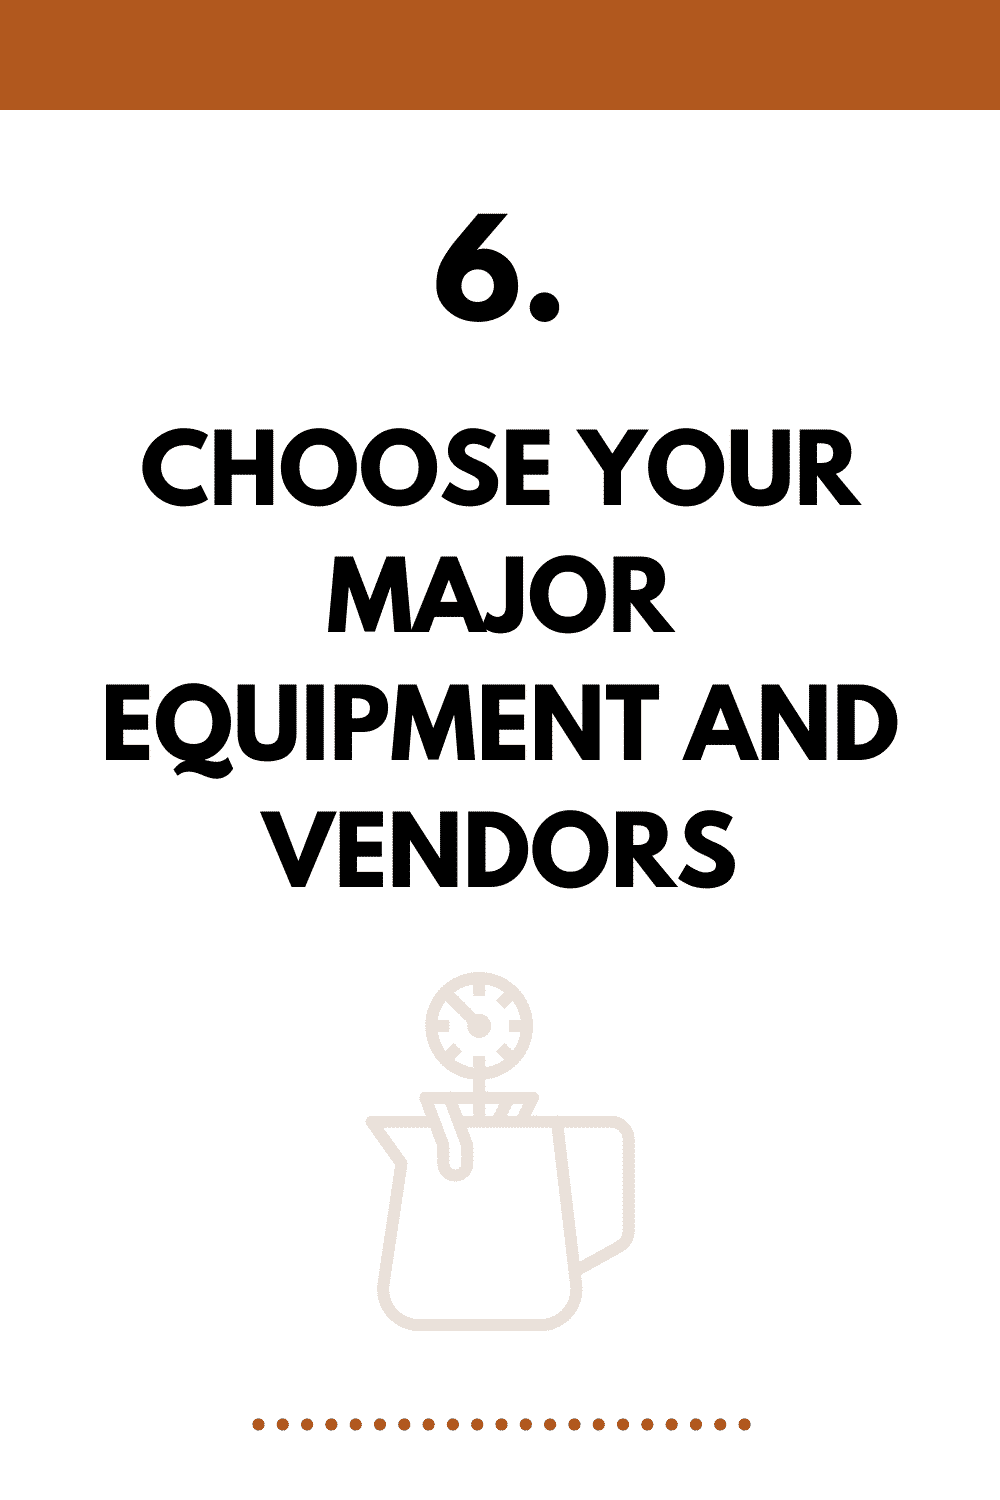 Choose your major equipment and vendors